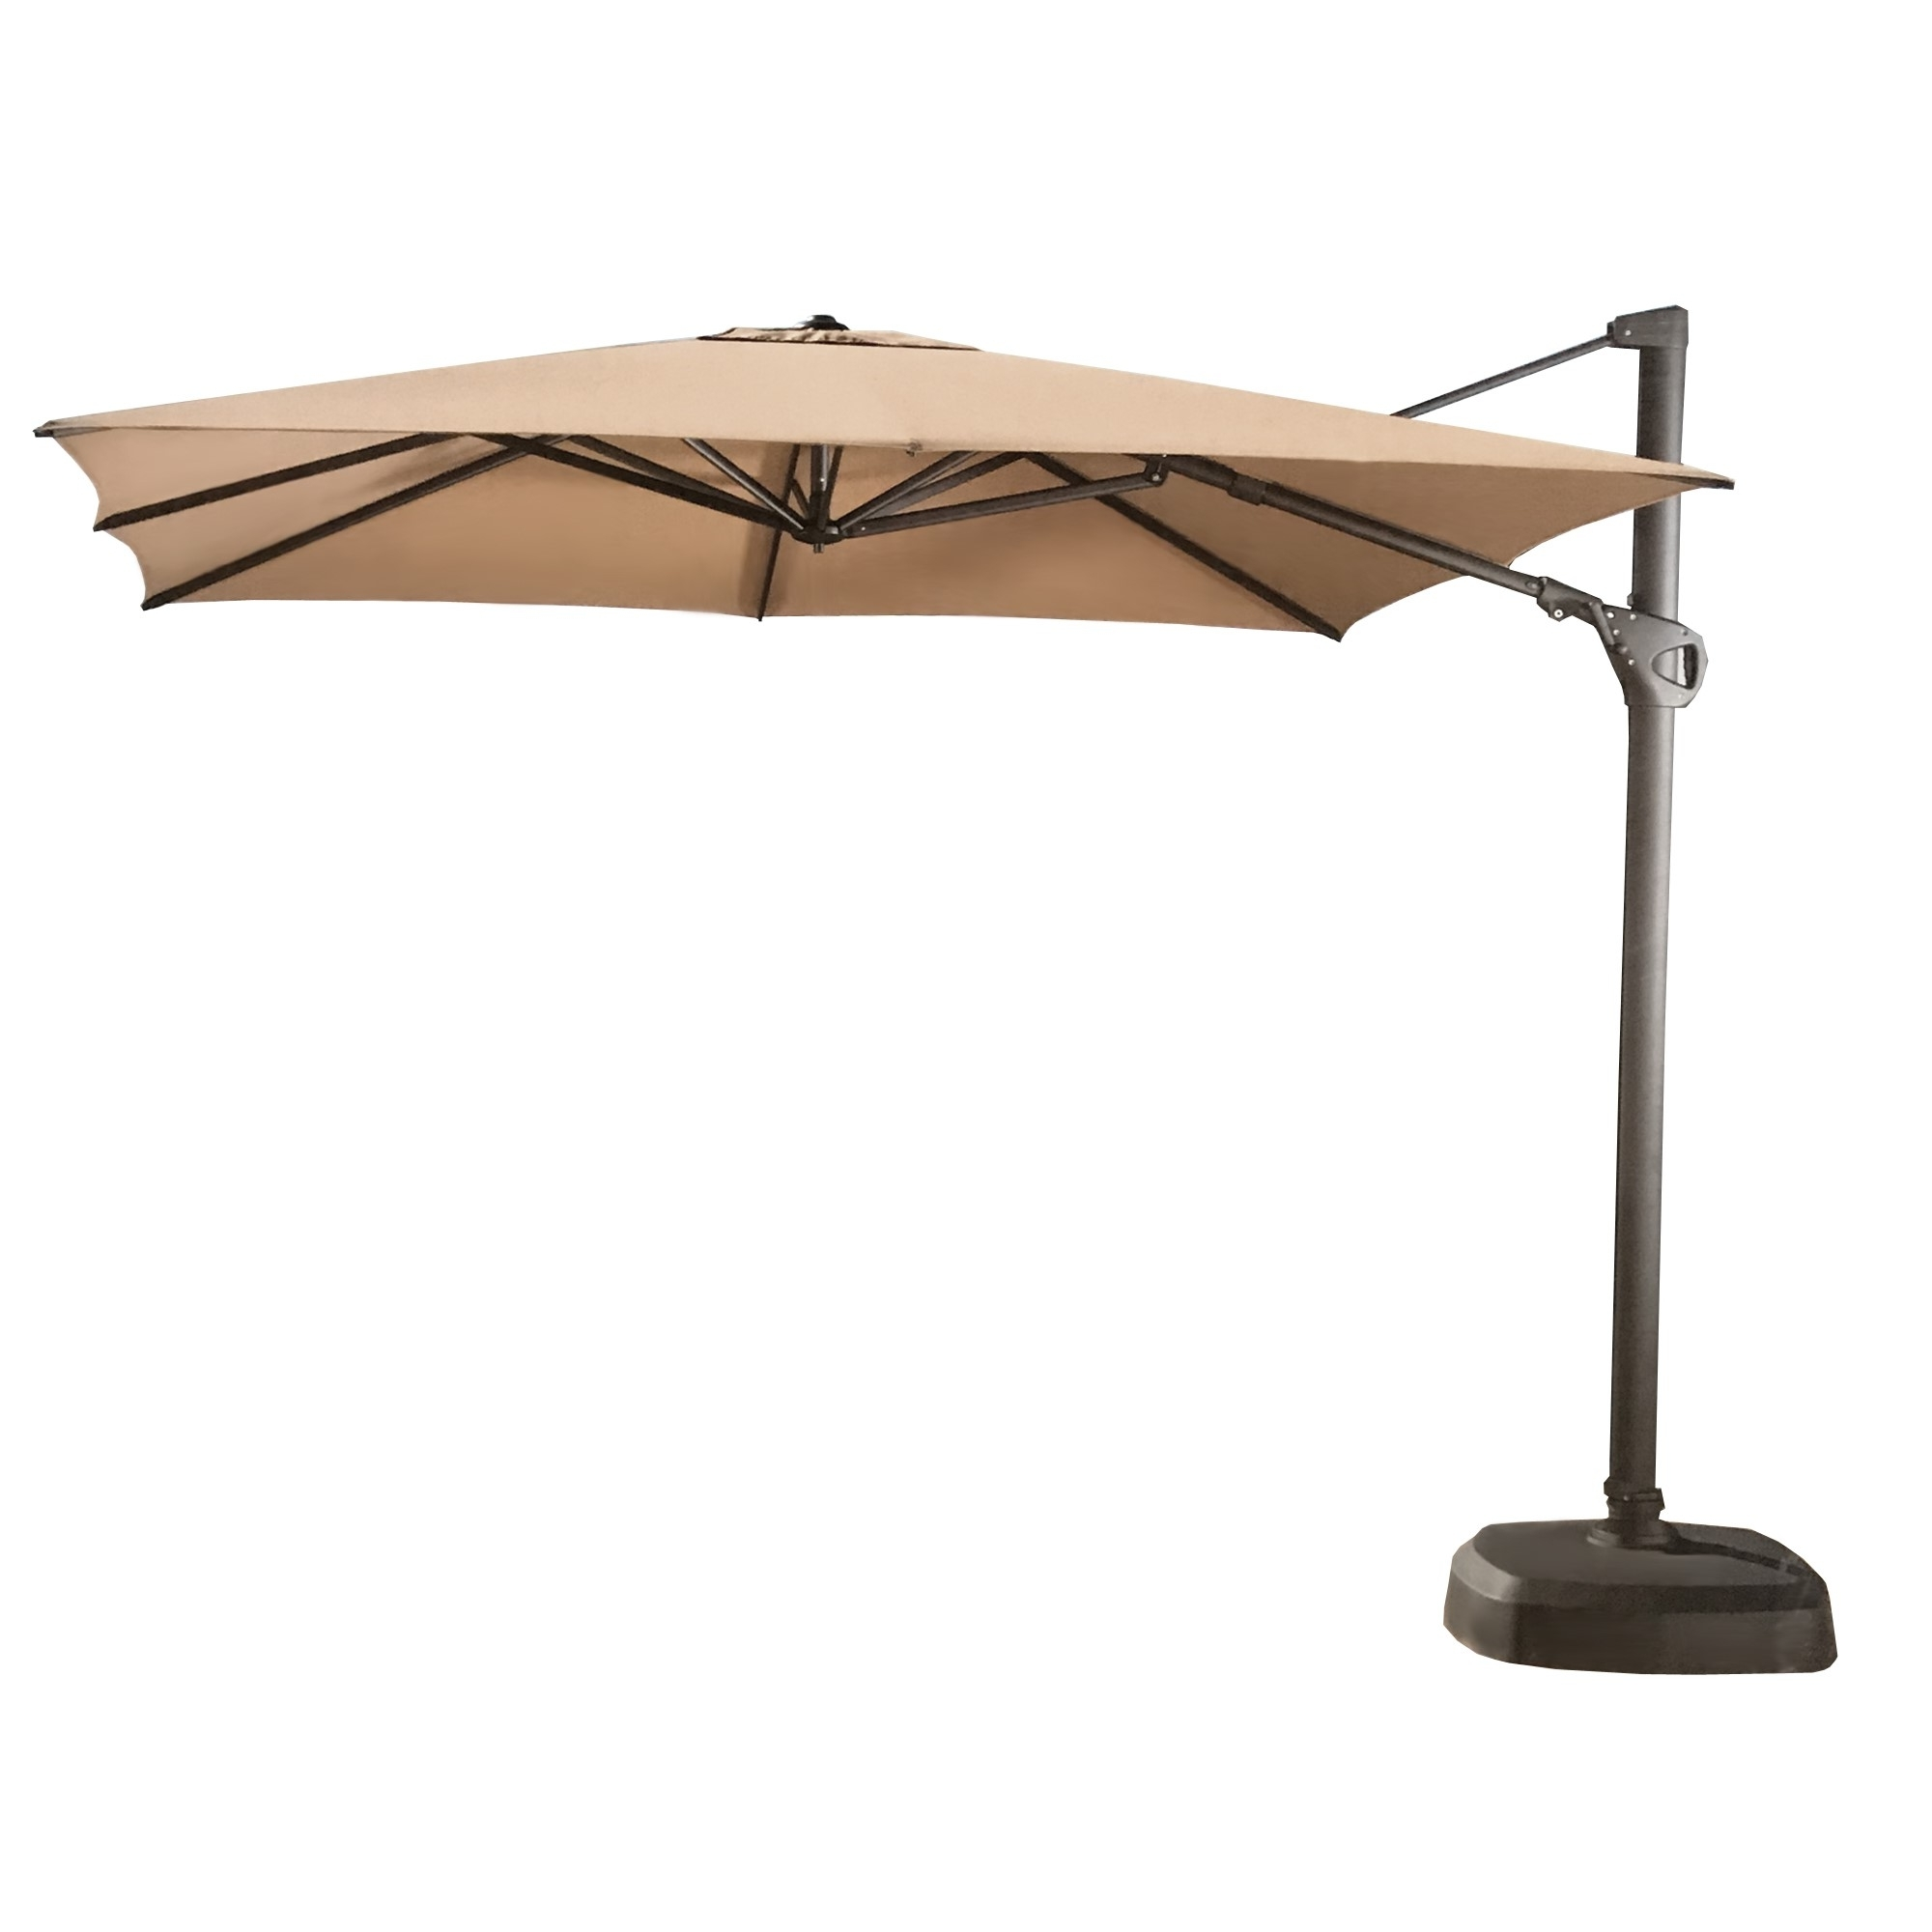 Preferred Costco Replacement Umbrella Canopy – Garden Winds Pertaining To Costco Cantilever Patio Umbrellas (View 15 of 20)